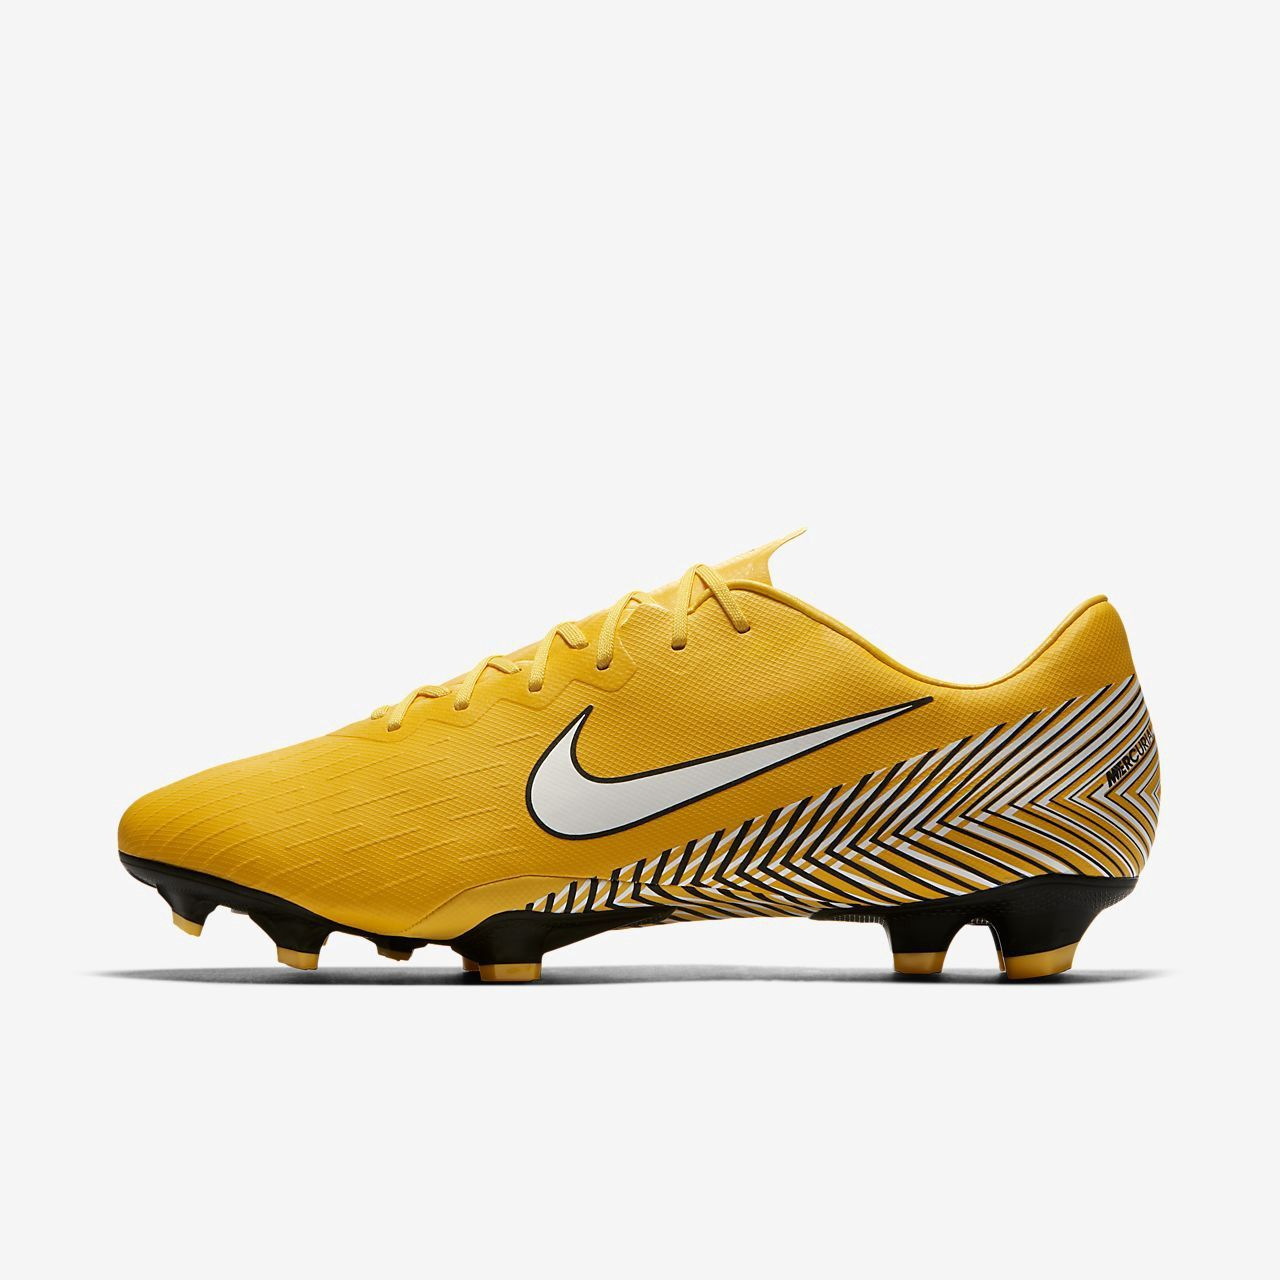 Nike Mercurial Vapor Xii Pro Neymar Jr Men s Firm-Ground Soccer Cleat - M  13   W 14.5  vaporizers 1f4387ba62b0d